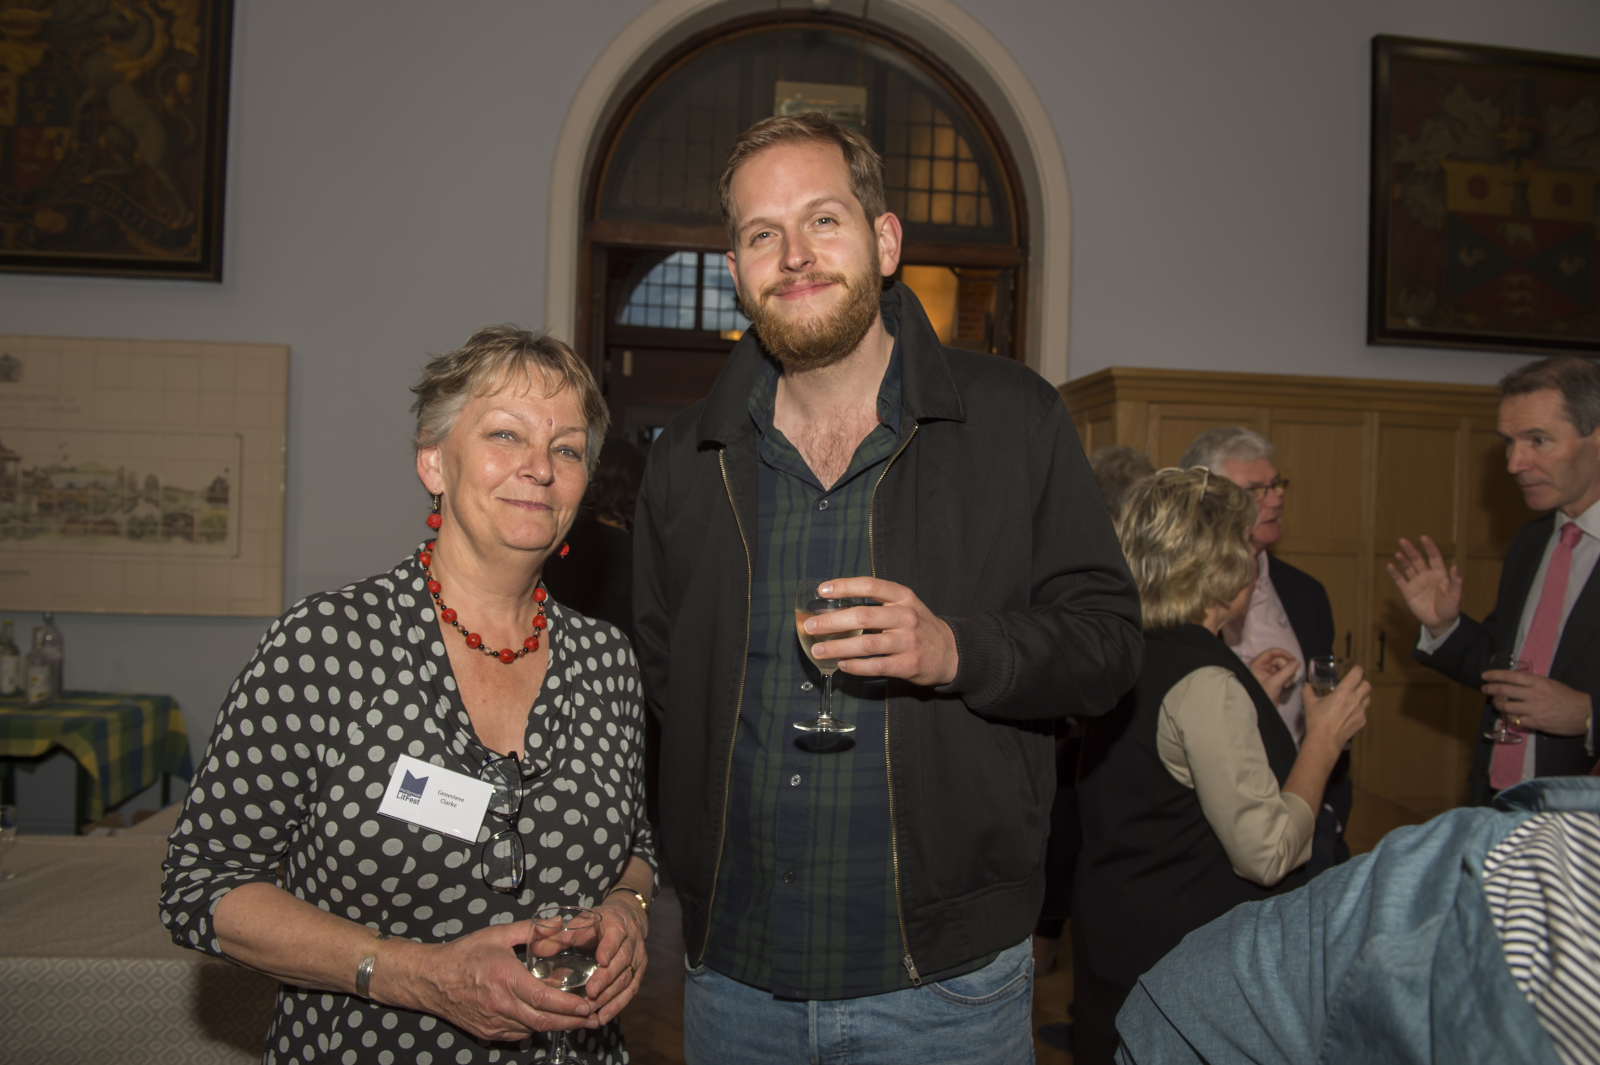 Genevieve Clarke of LitFest with author Daniel Shand